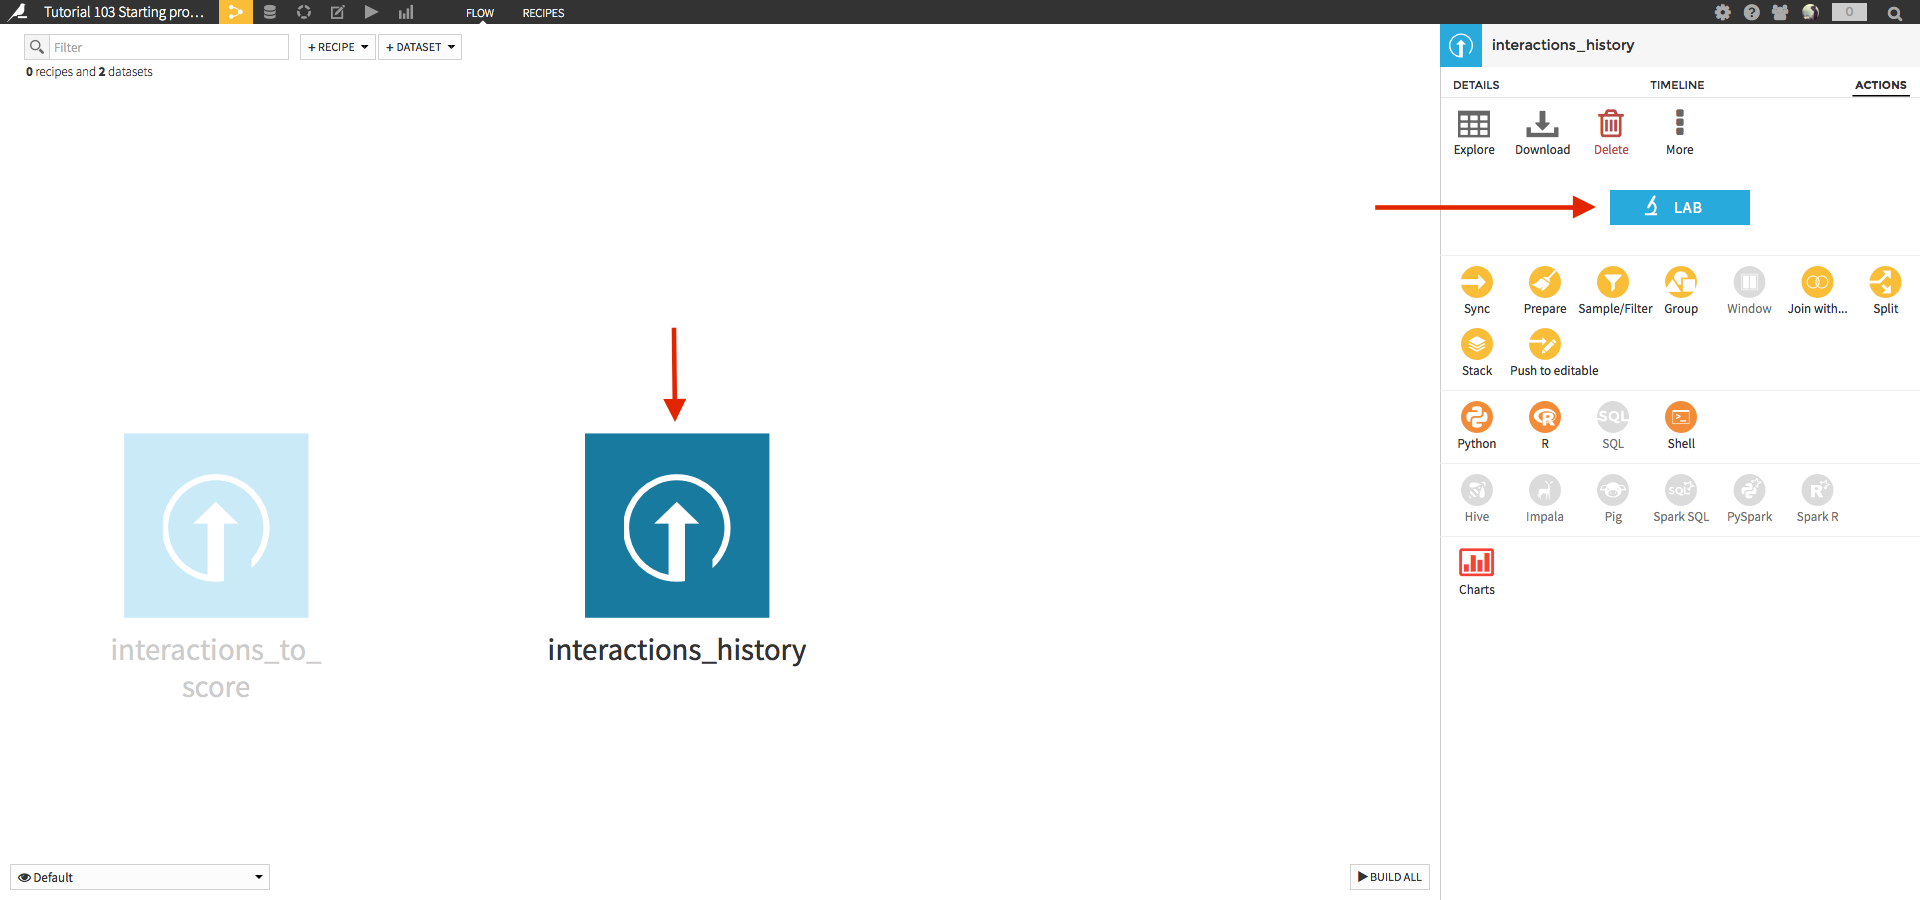 Flow with interactions_history dataset and Lab button highlighted